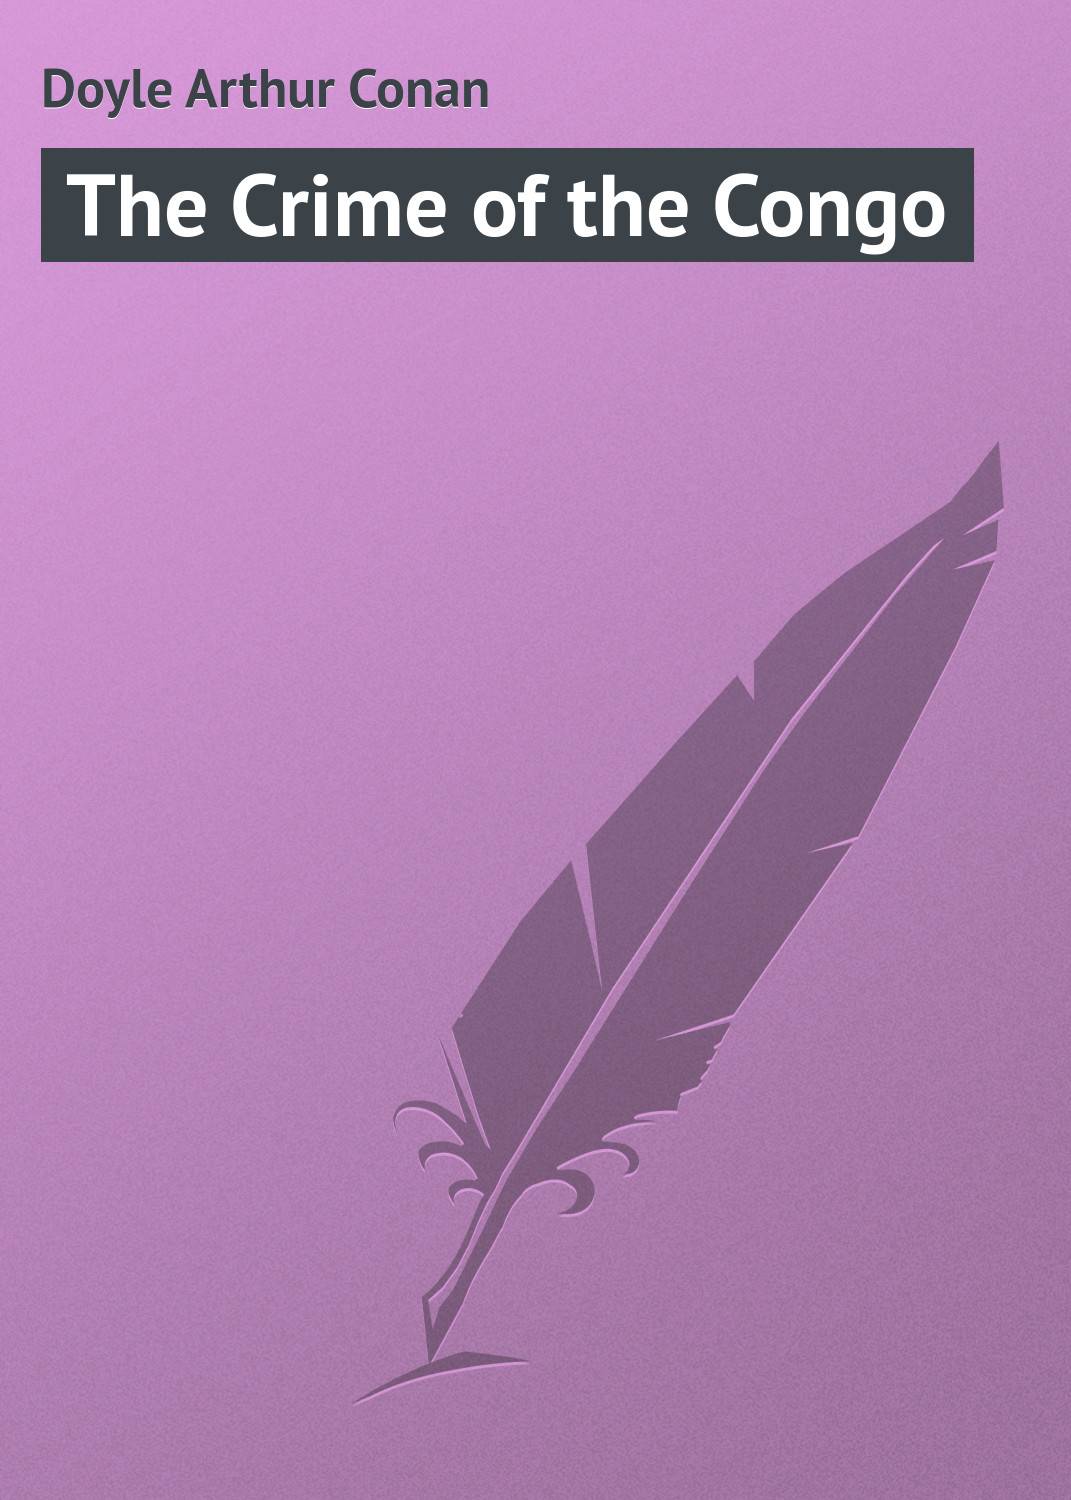 Doyle Arthur Conan The Crime of the Congo arthur conan doyle the white company isbn 978 5 521 07143 2